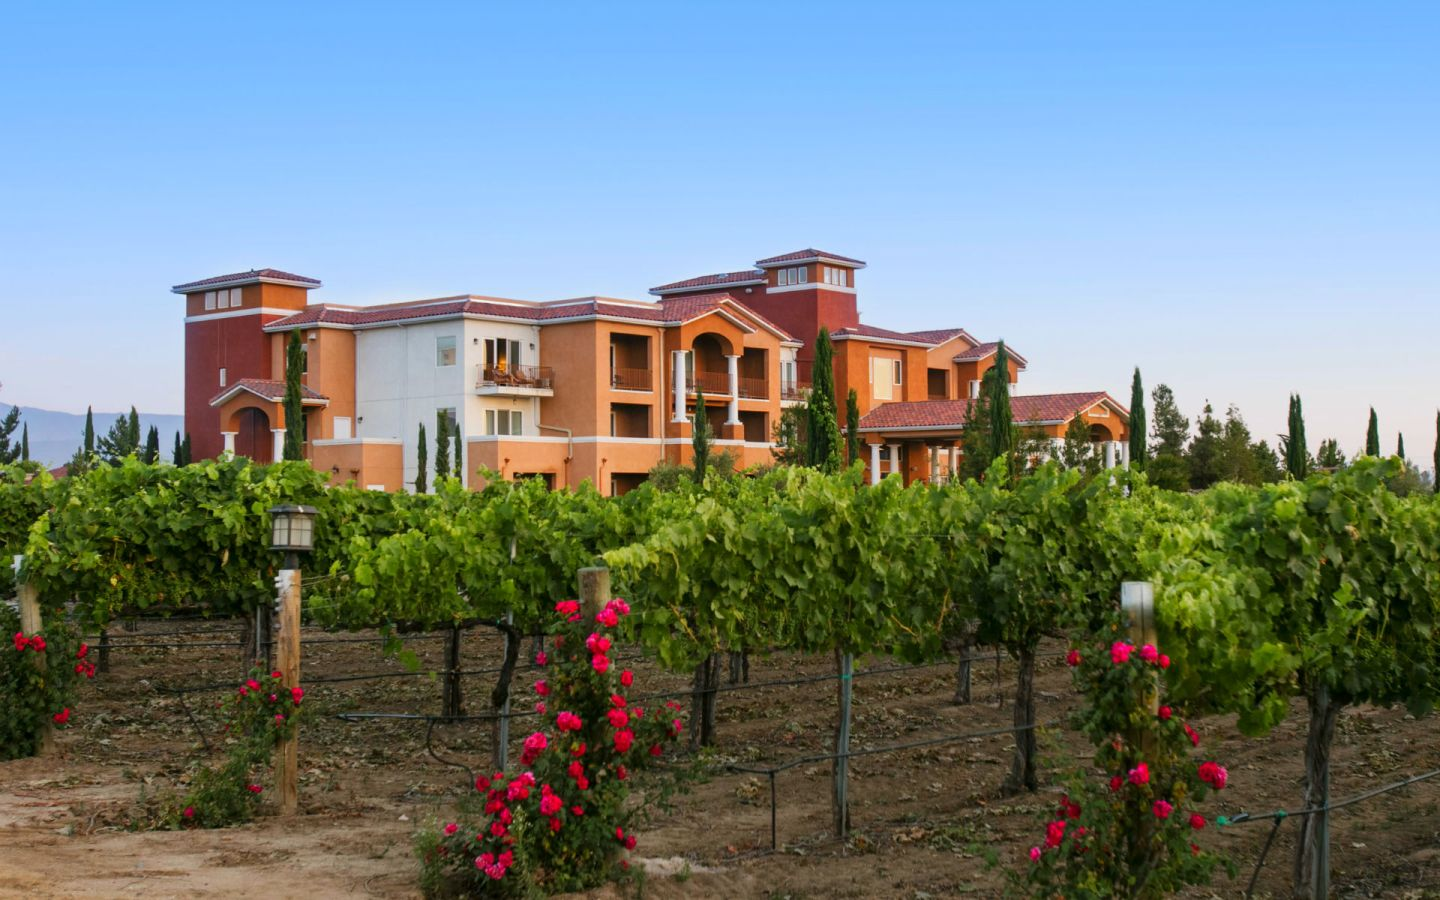 Temecula Winery Hotels | Temecula Resort | South Coast Winery